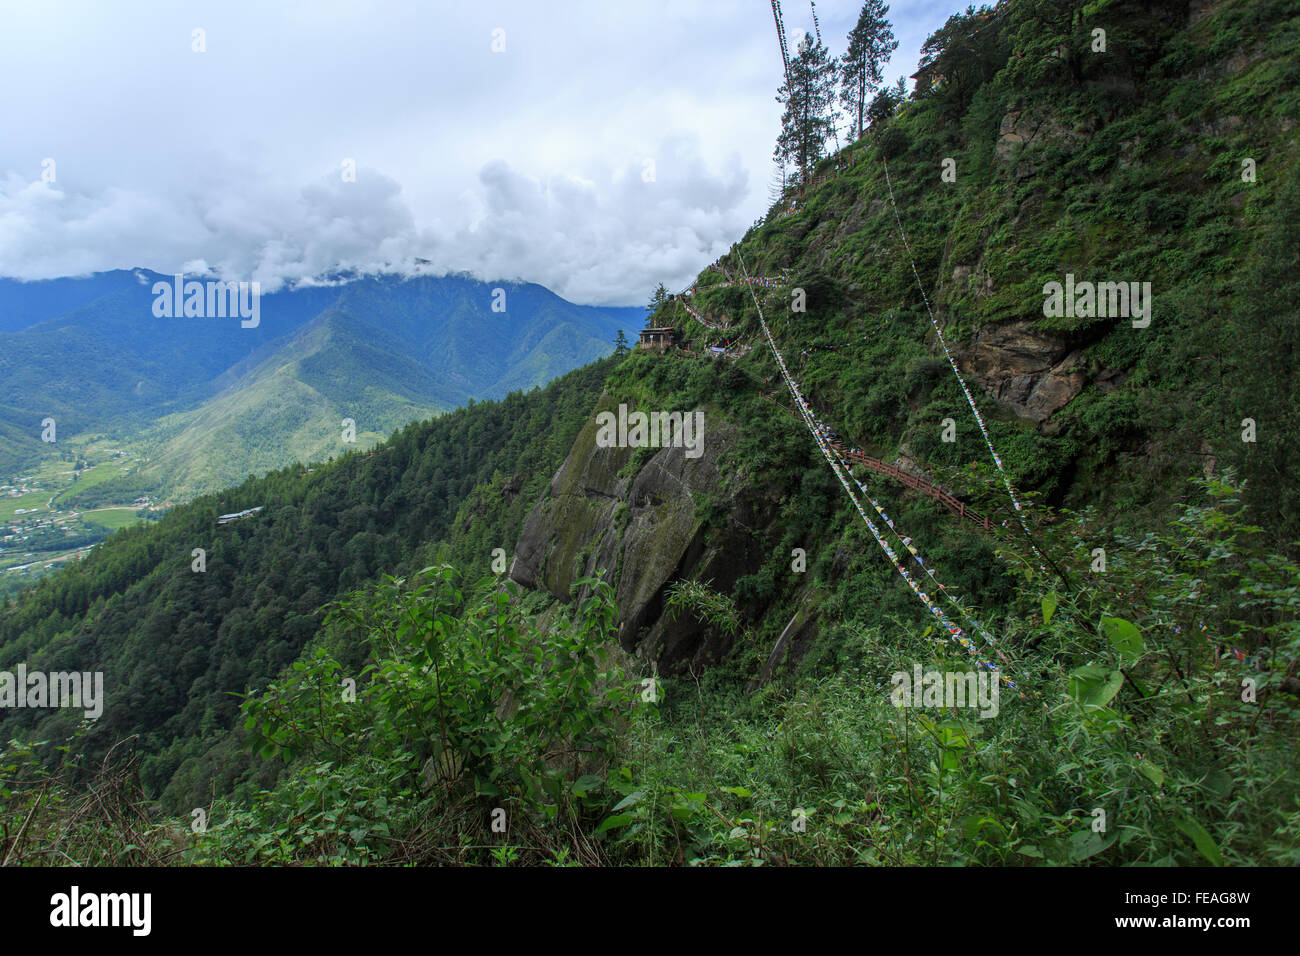 View from Taktsang Monastery, Bhutan - Stock Image